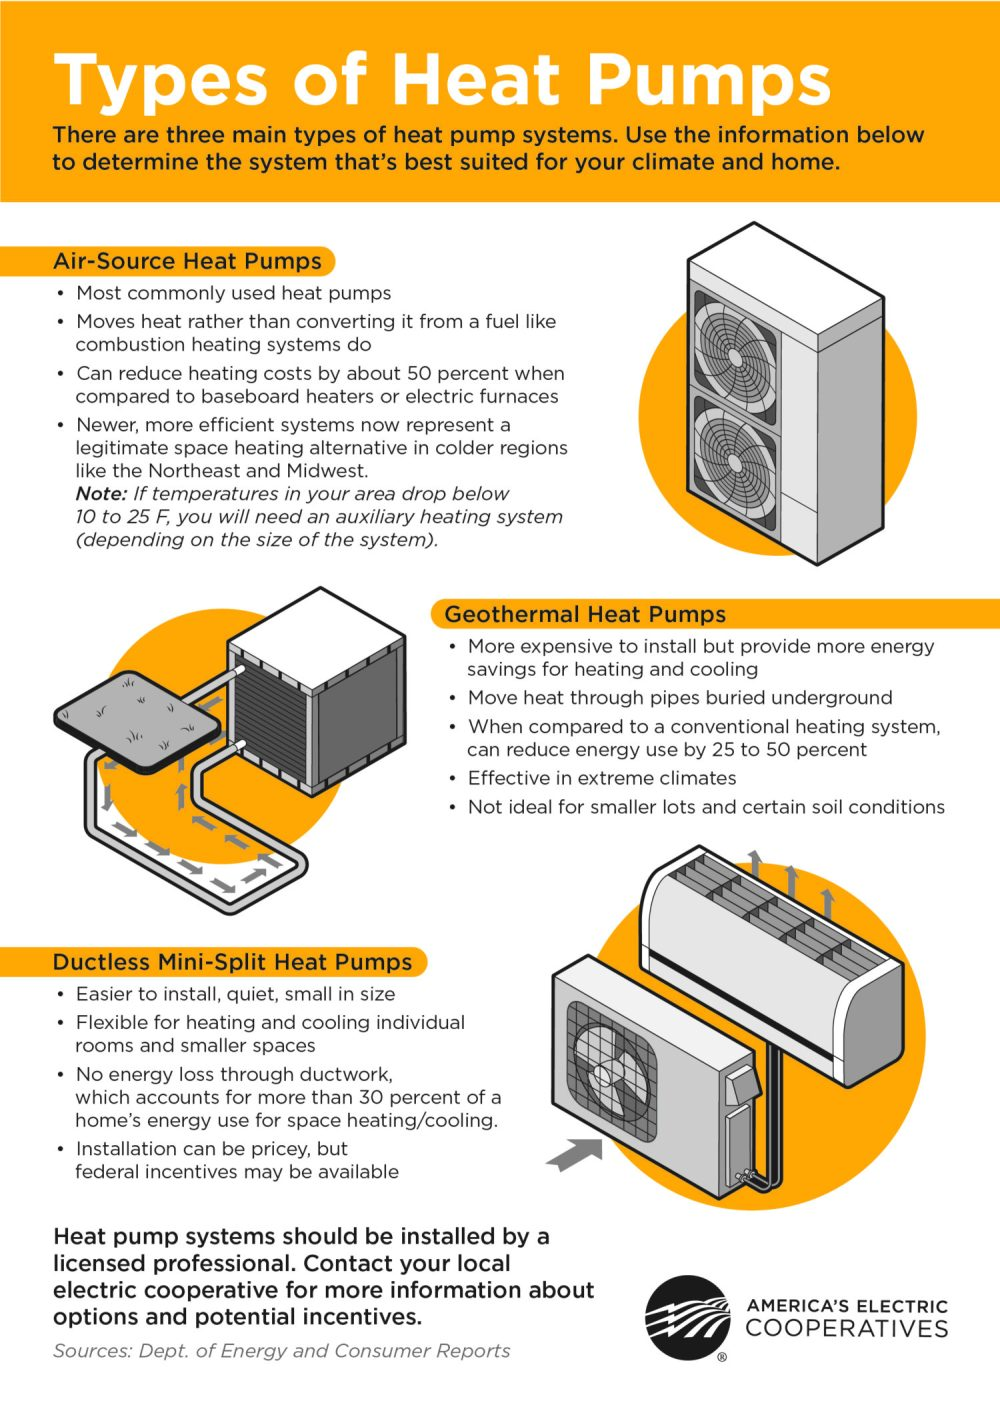 medium resolution of heat pumps are cool and warm too what type is best for you air source geothermal or ductless mini split